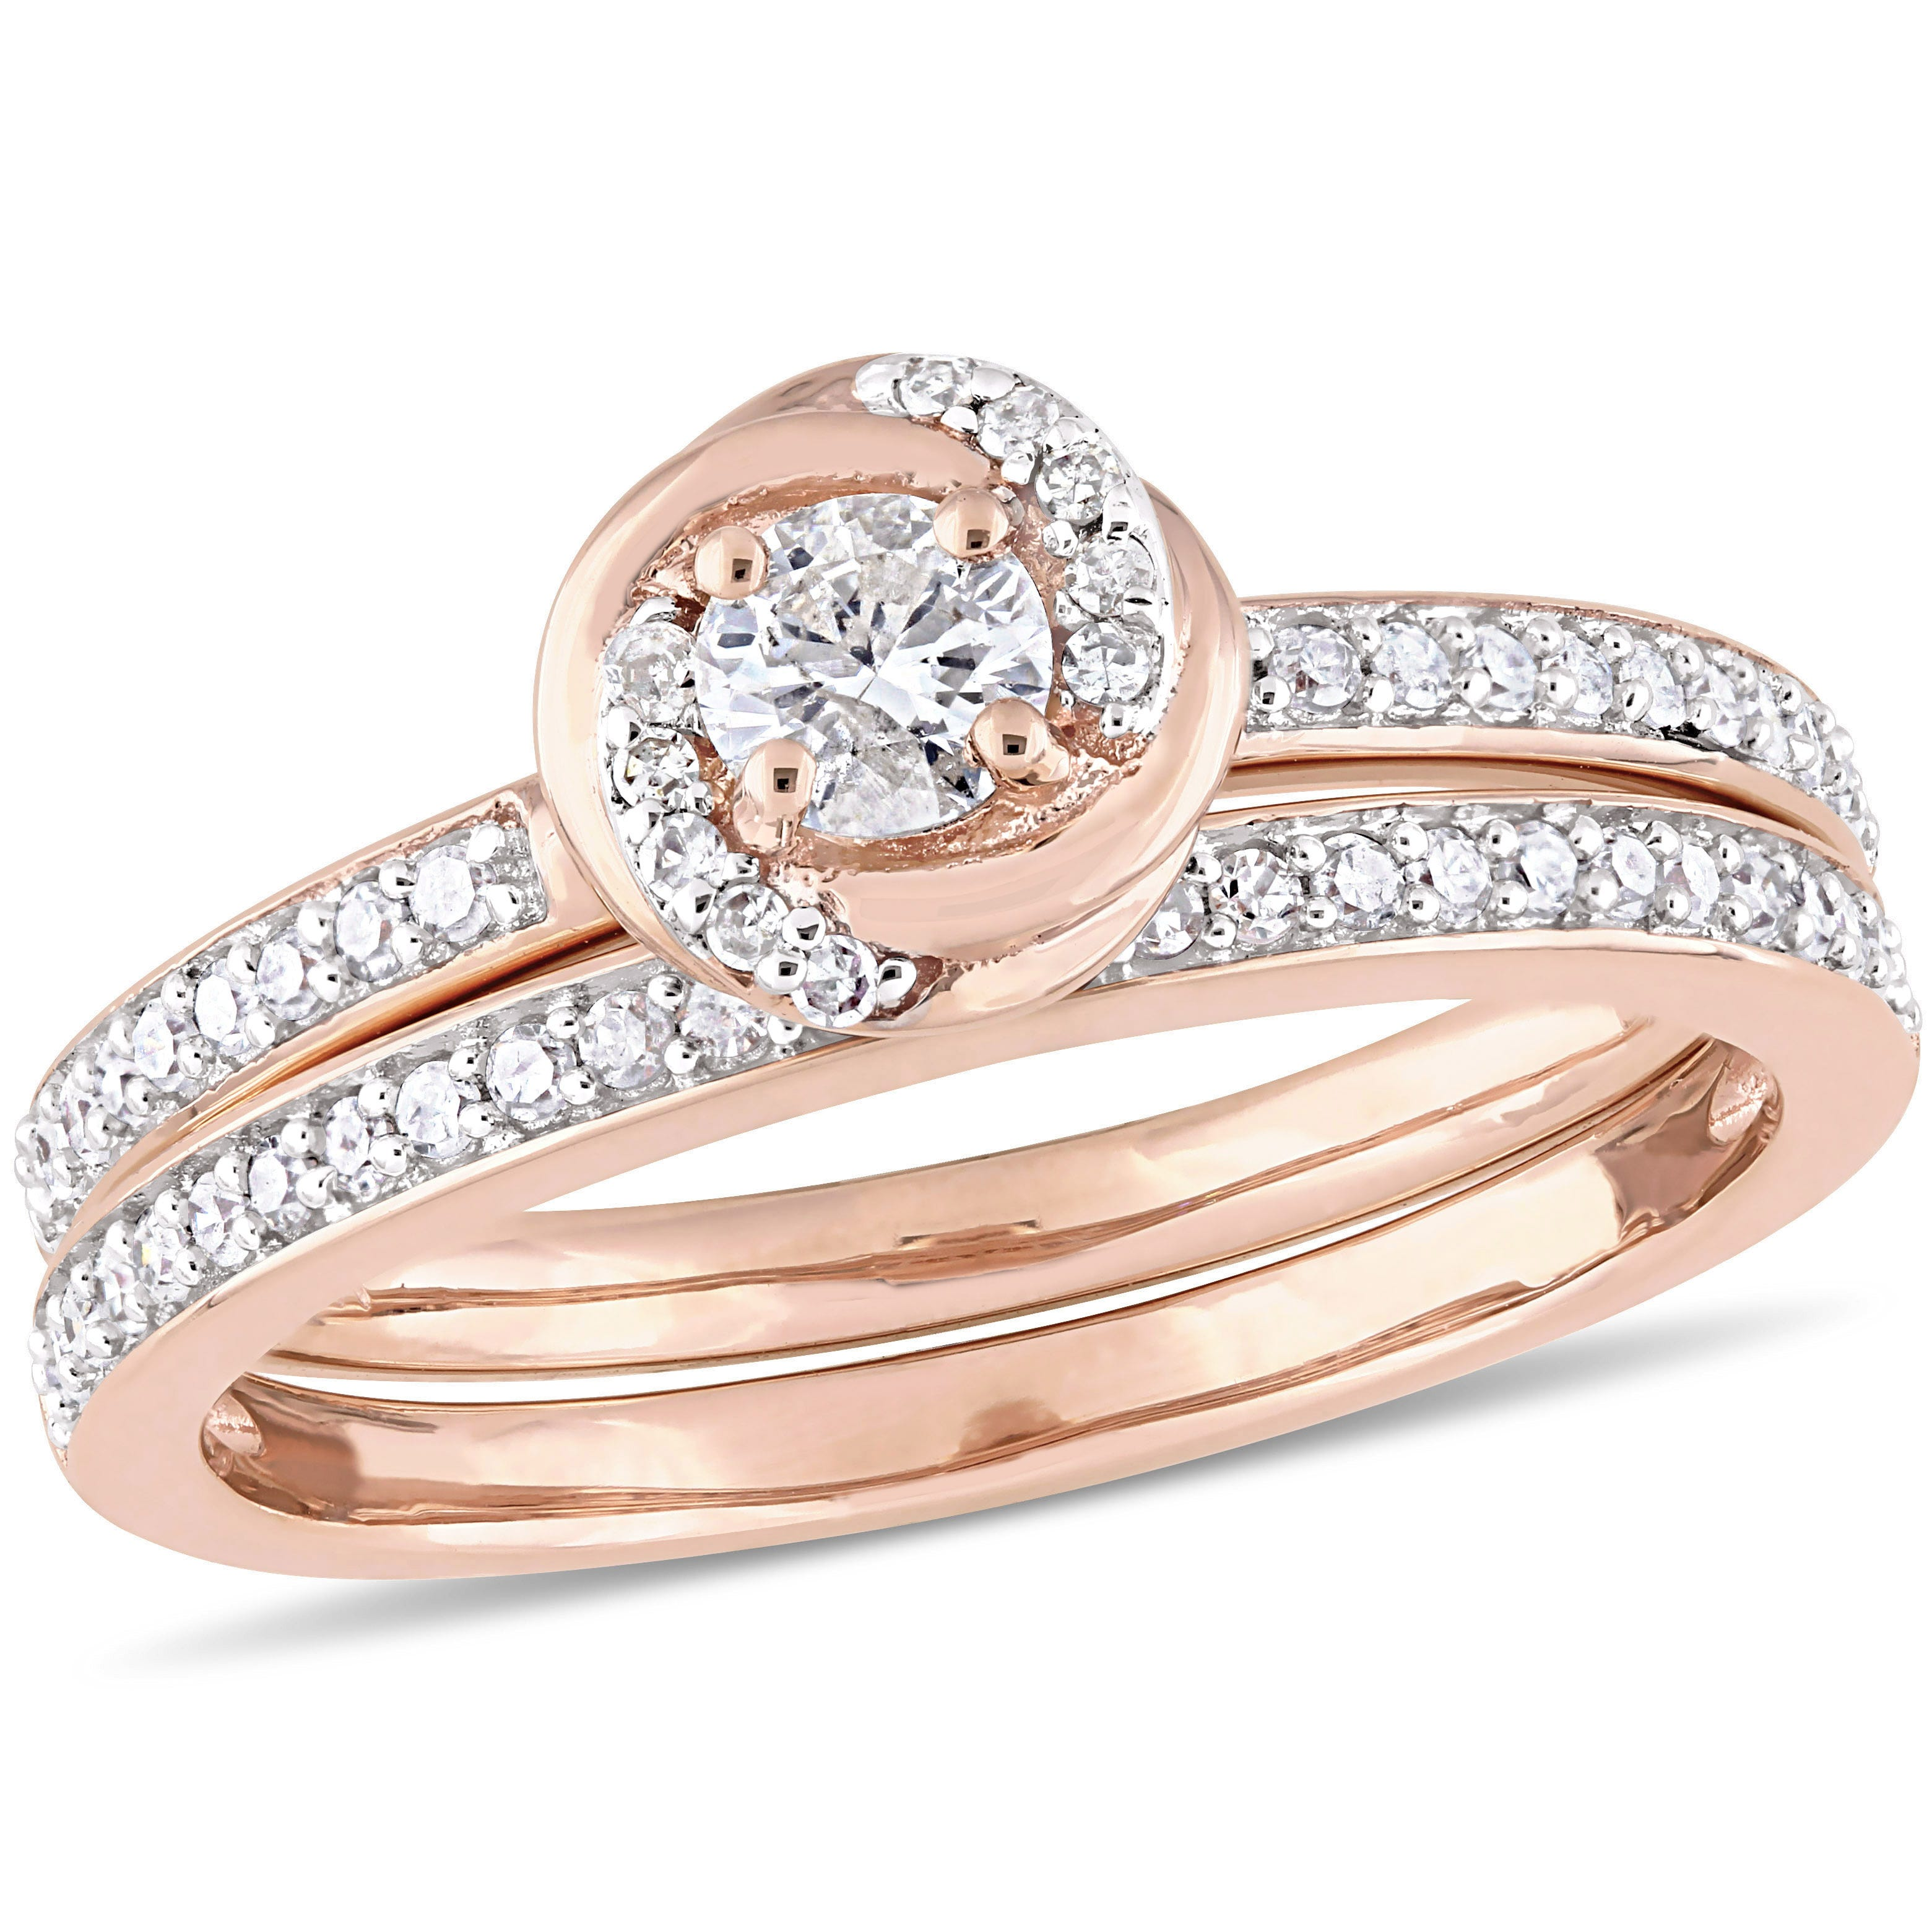 Diamond Swirl Bridal Set 1/2ctw. in 10k Rose Gold